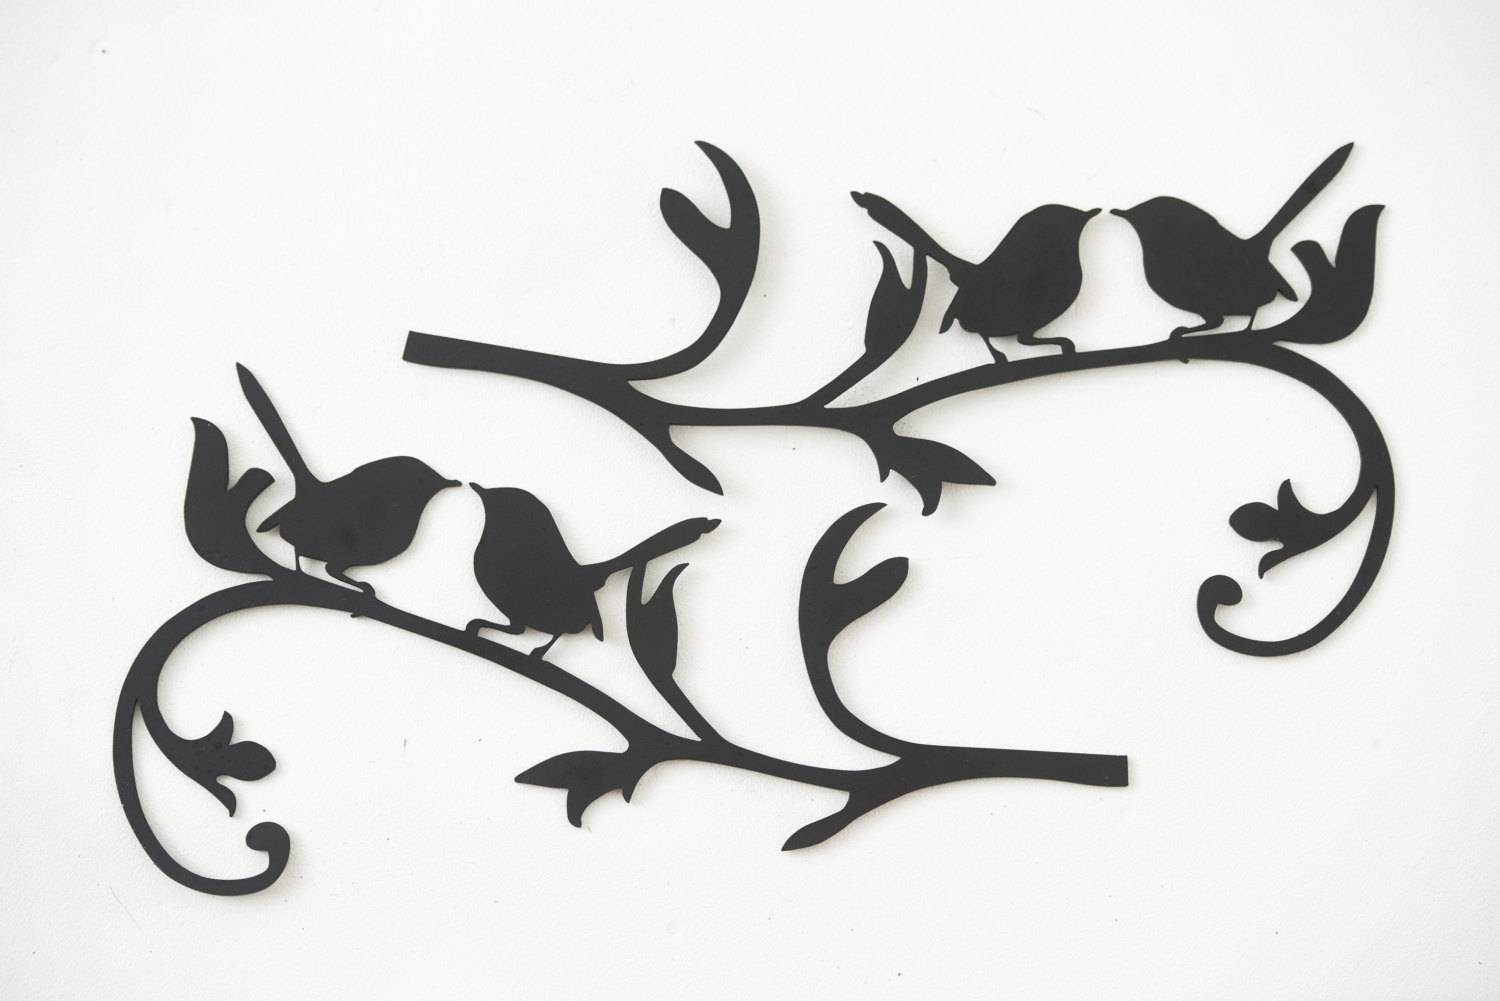 Wall Art Designs: Metal Bird Wall Art Hand Drawn And Laser Cut Pertaining To Recent Laser Cut Metal Wall Art (View 15 of 20)